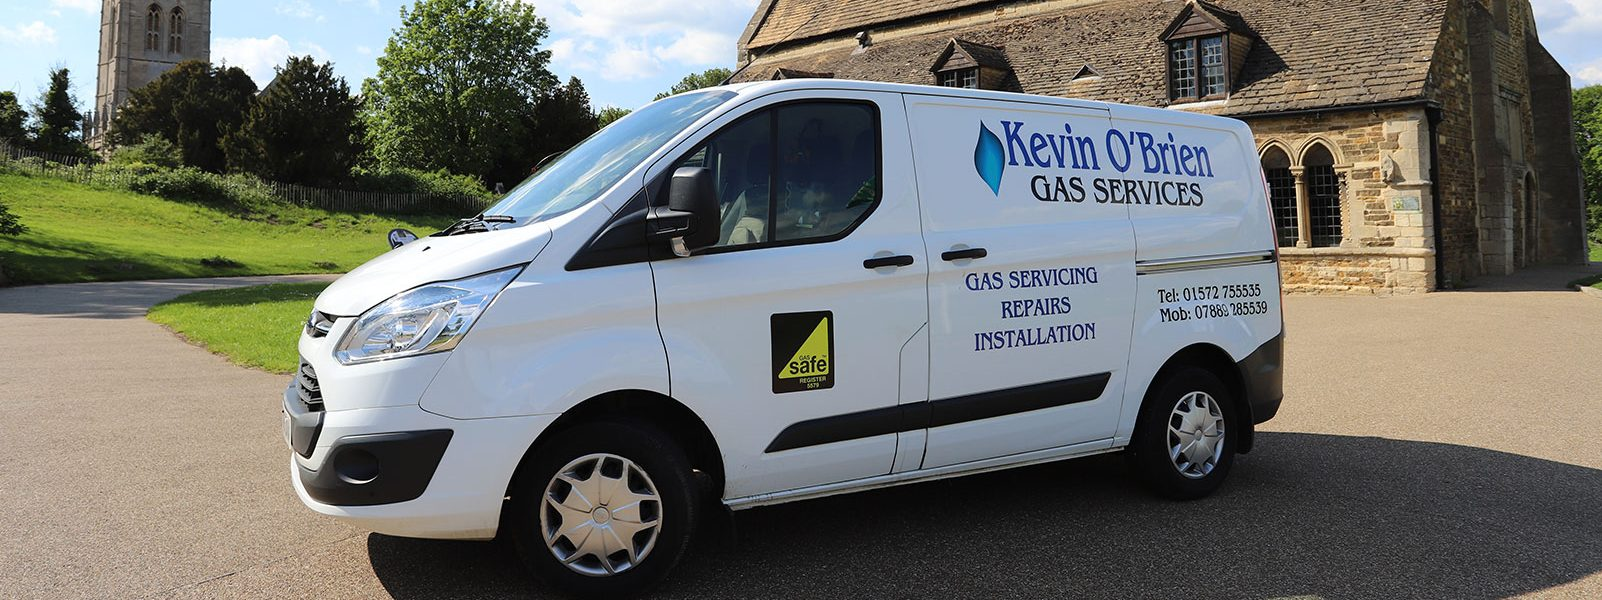 Kevin O'Brien Gas Services